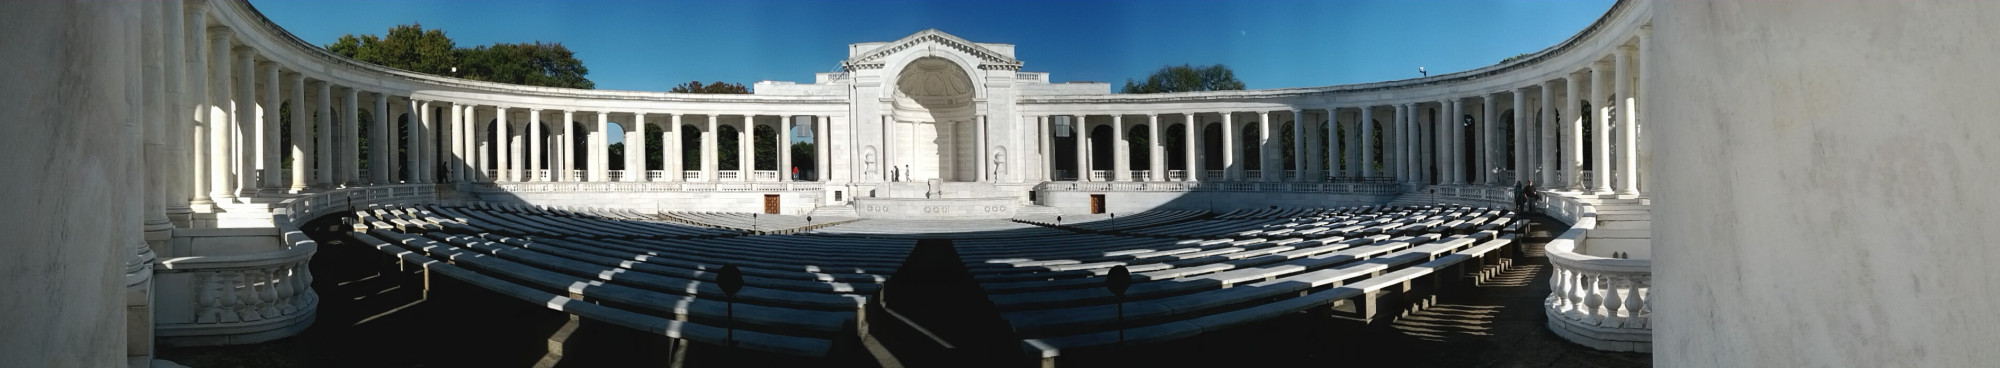 tomb of the unknown soldier amphitheater